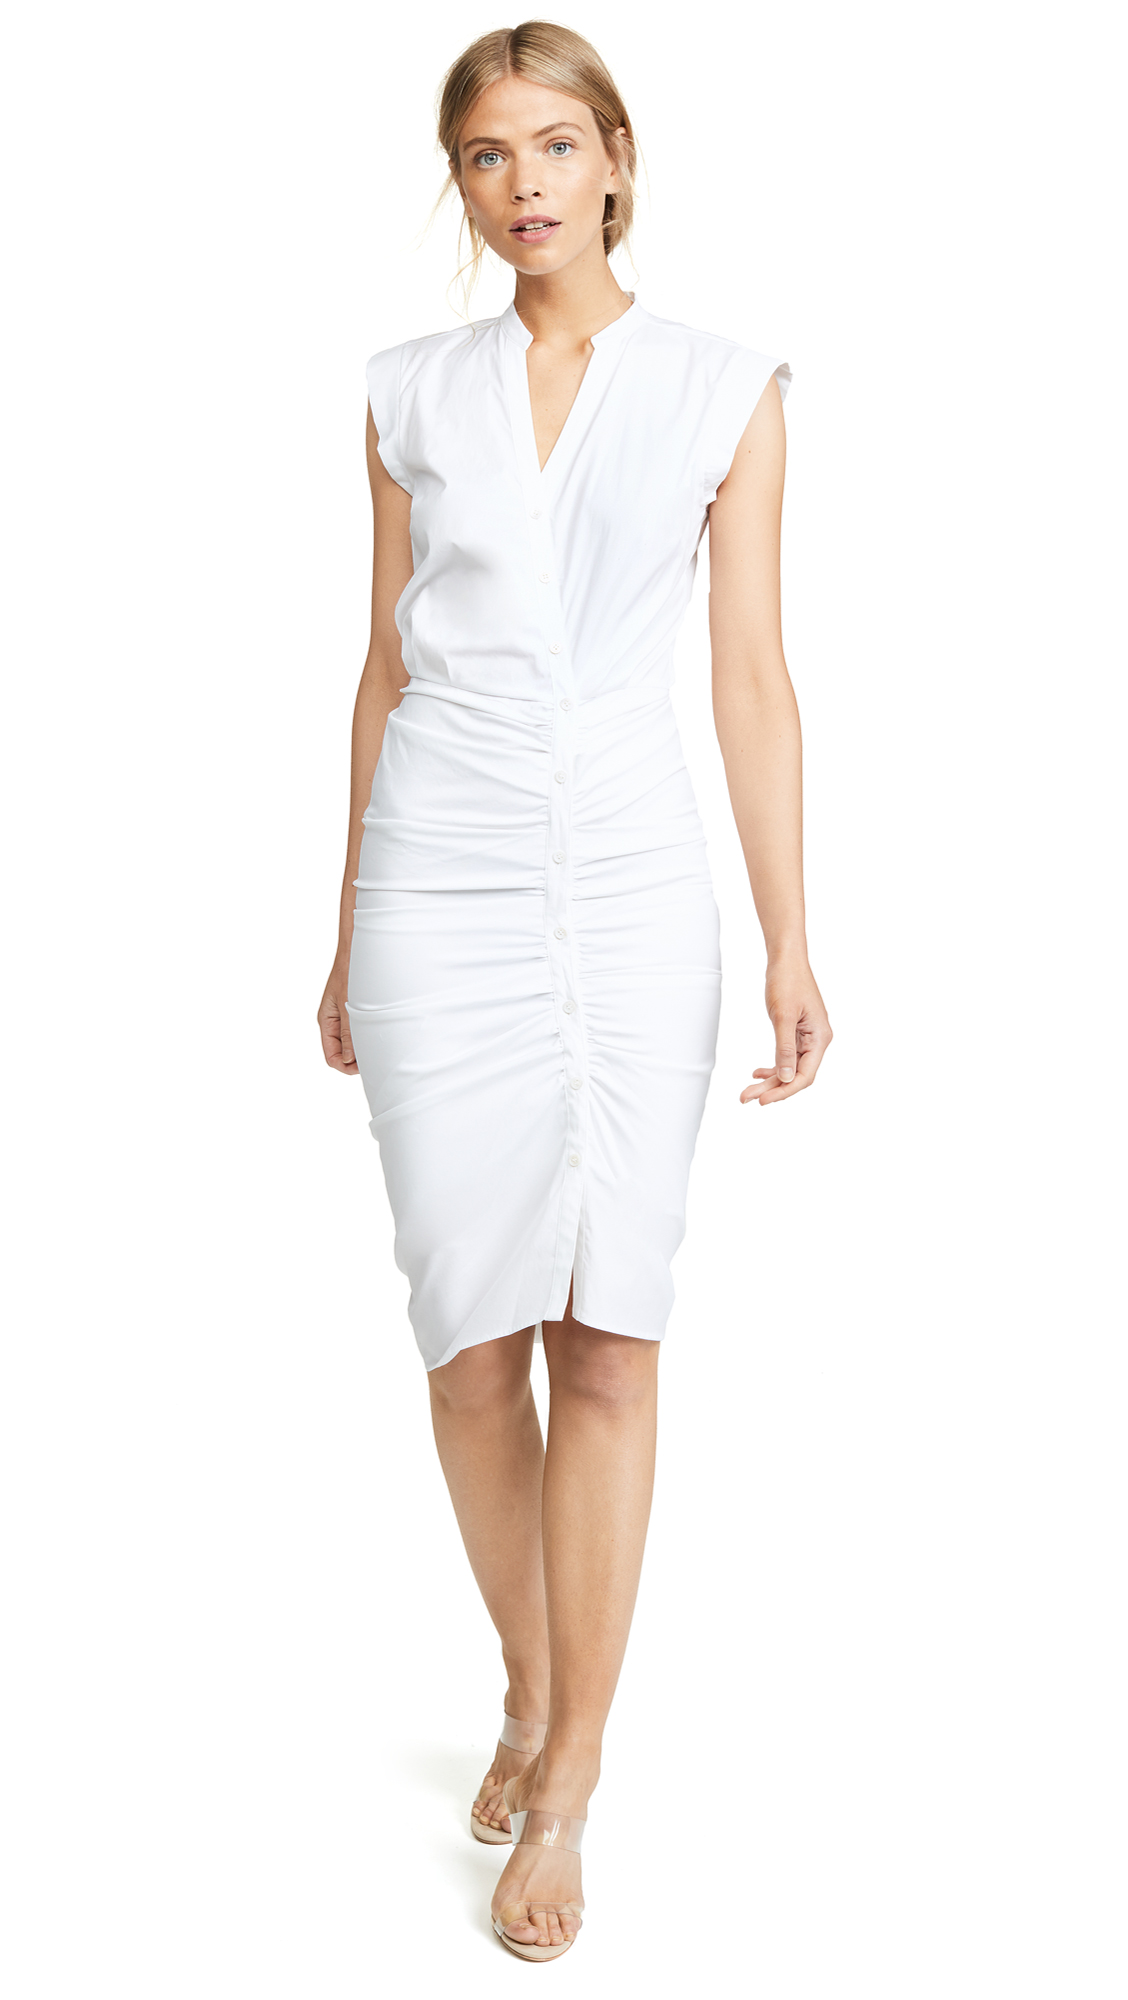 Veronica Beard Long Ruched Dress - White